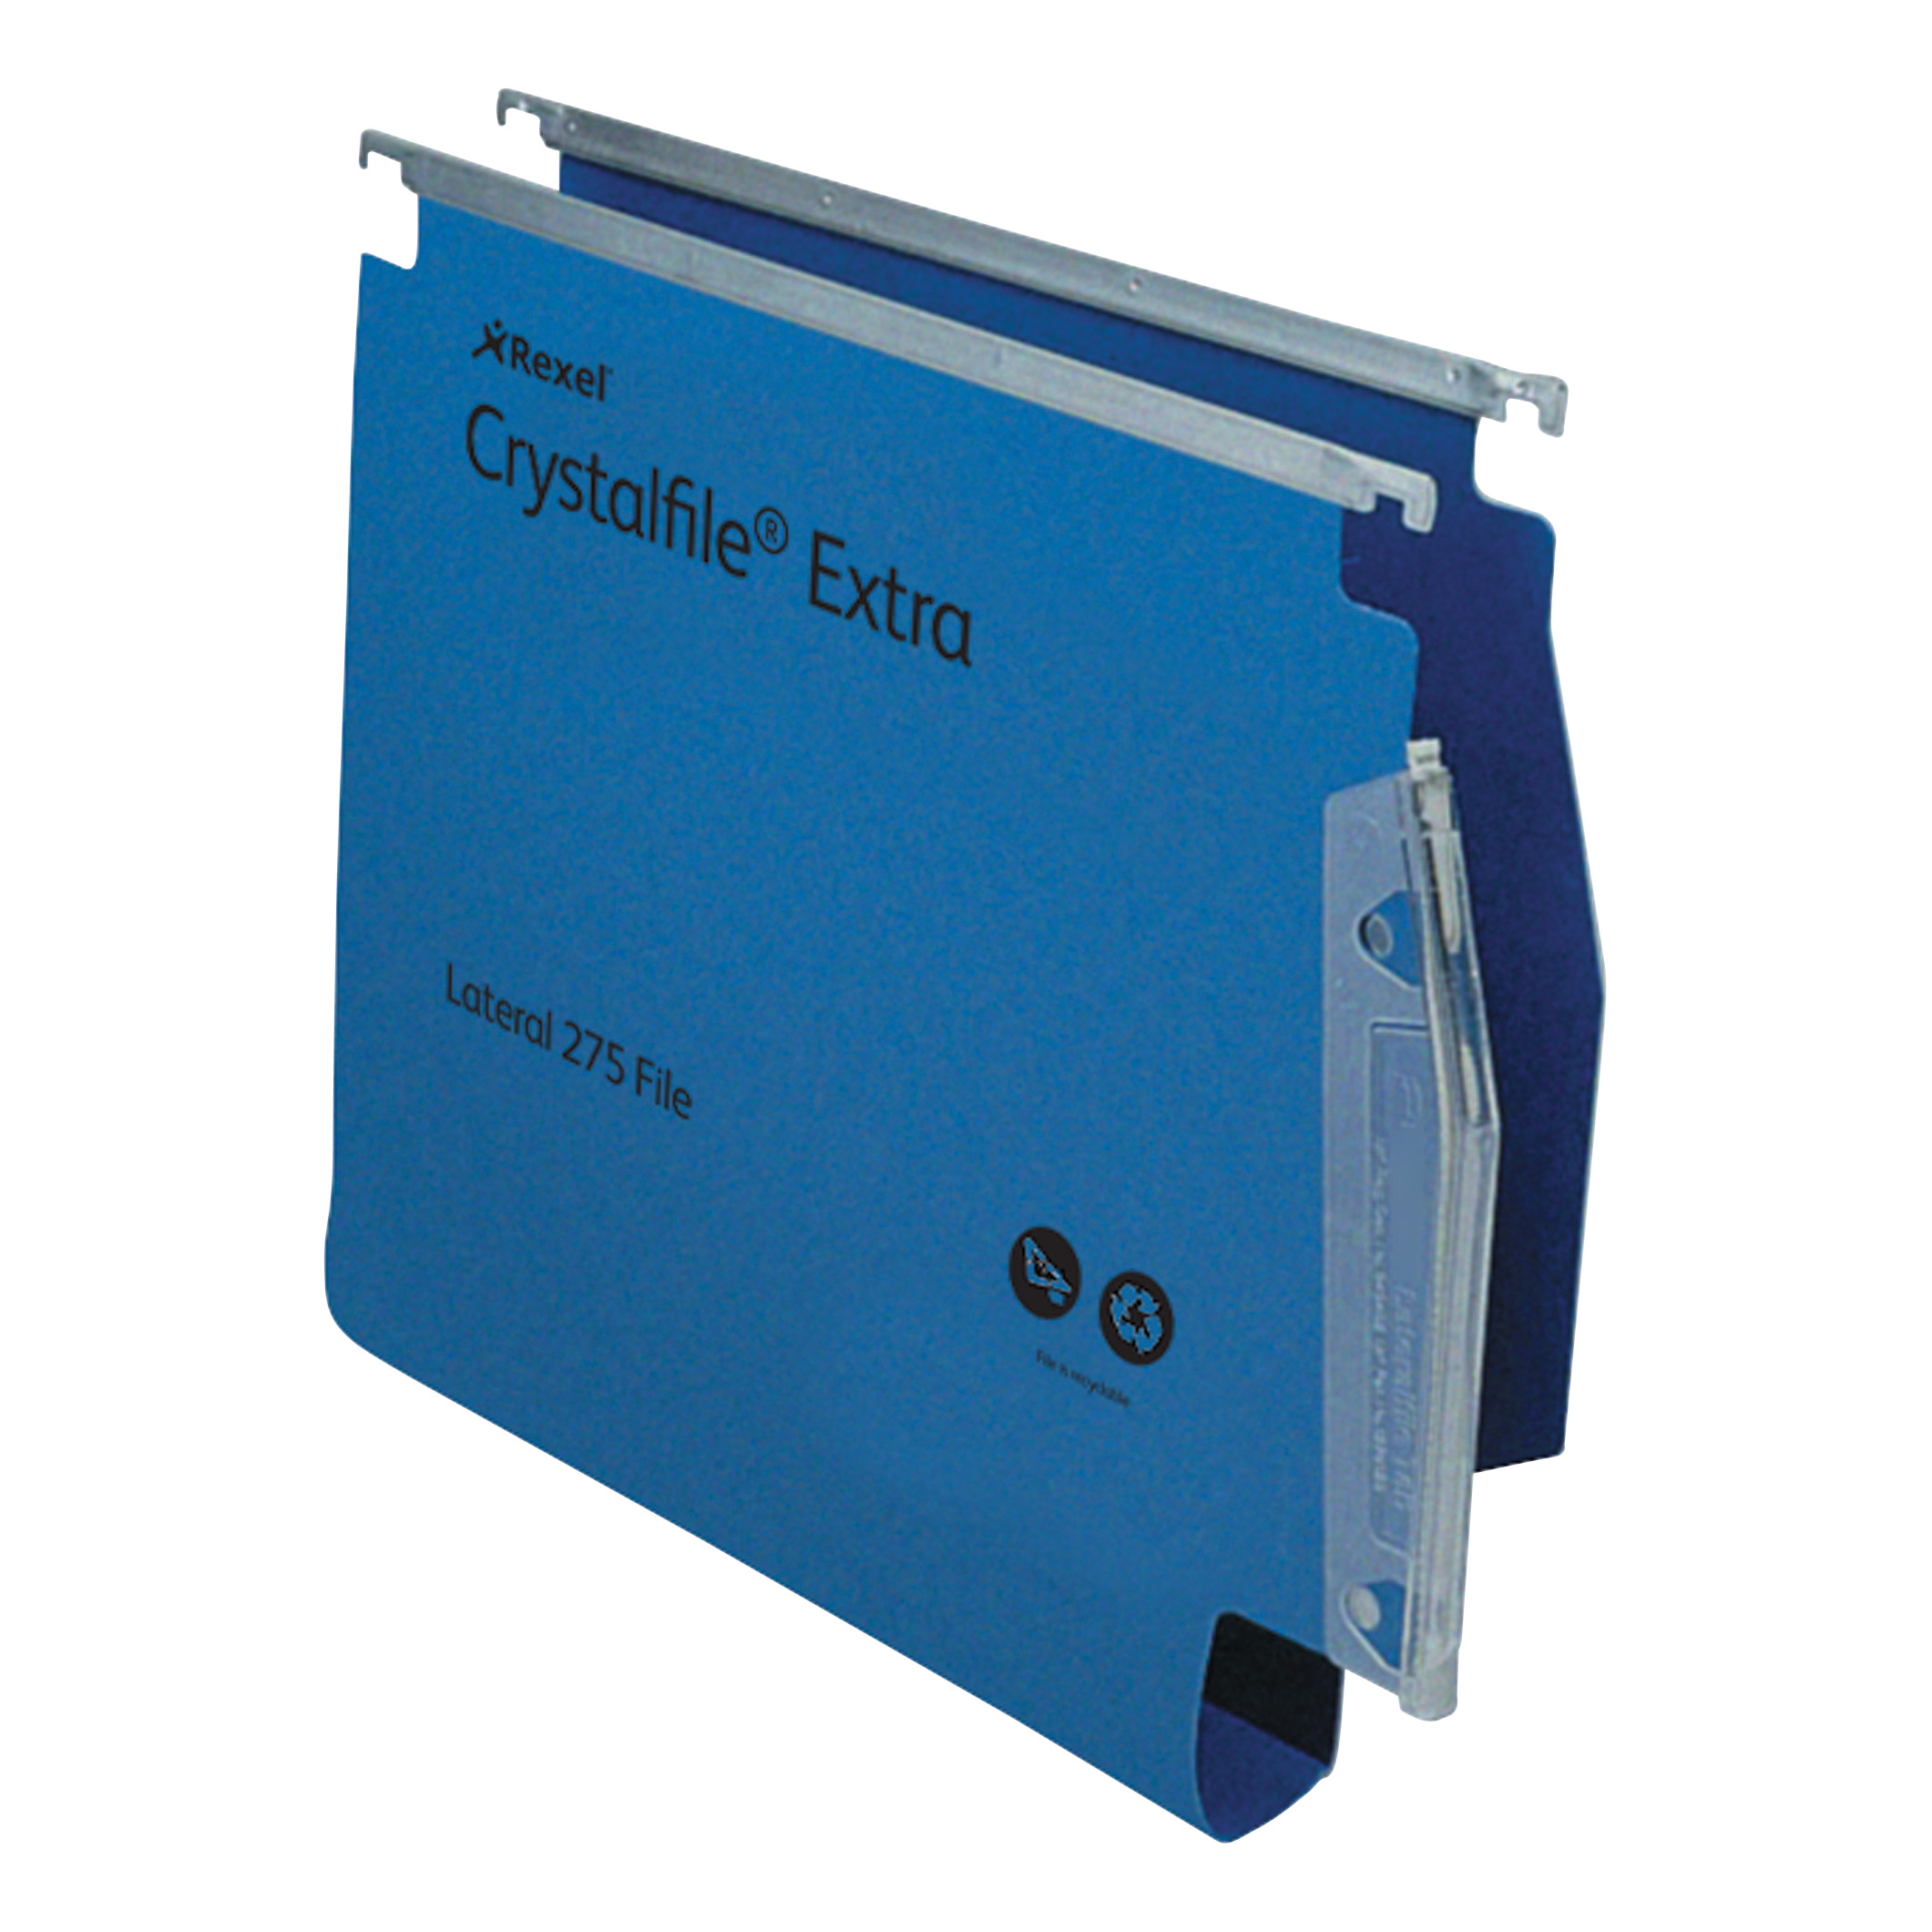 Rexel Crystalfile Extra Lateral File Polypropylene 30mm Wide-base A4 Blue Ref 70642 Pack 25